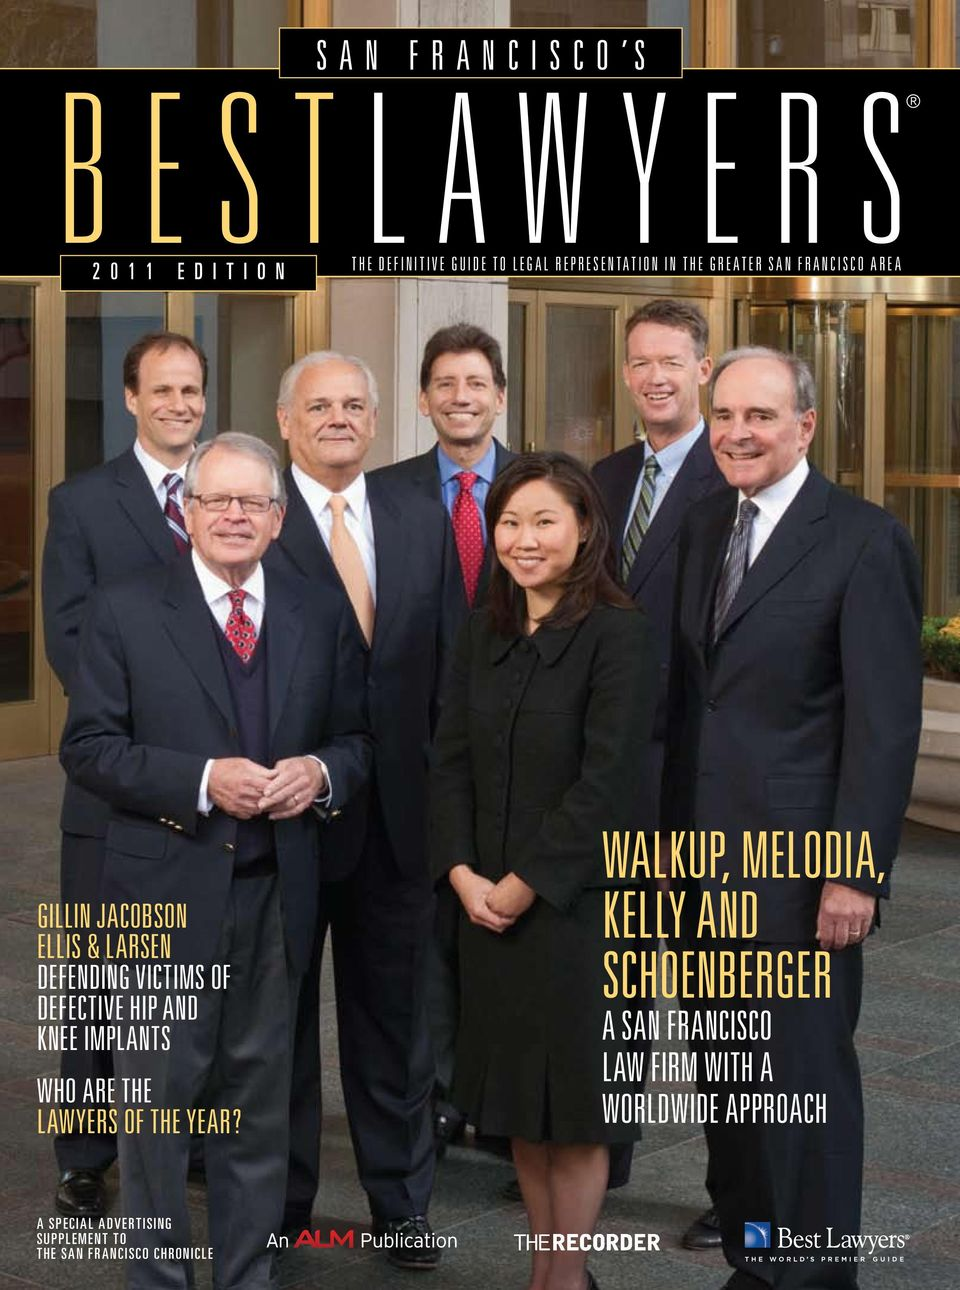 BestLawyers  Walkup, Melodia, Kelly and Schoenberger  A San